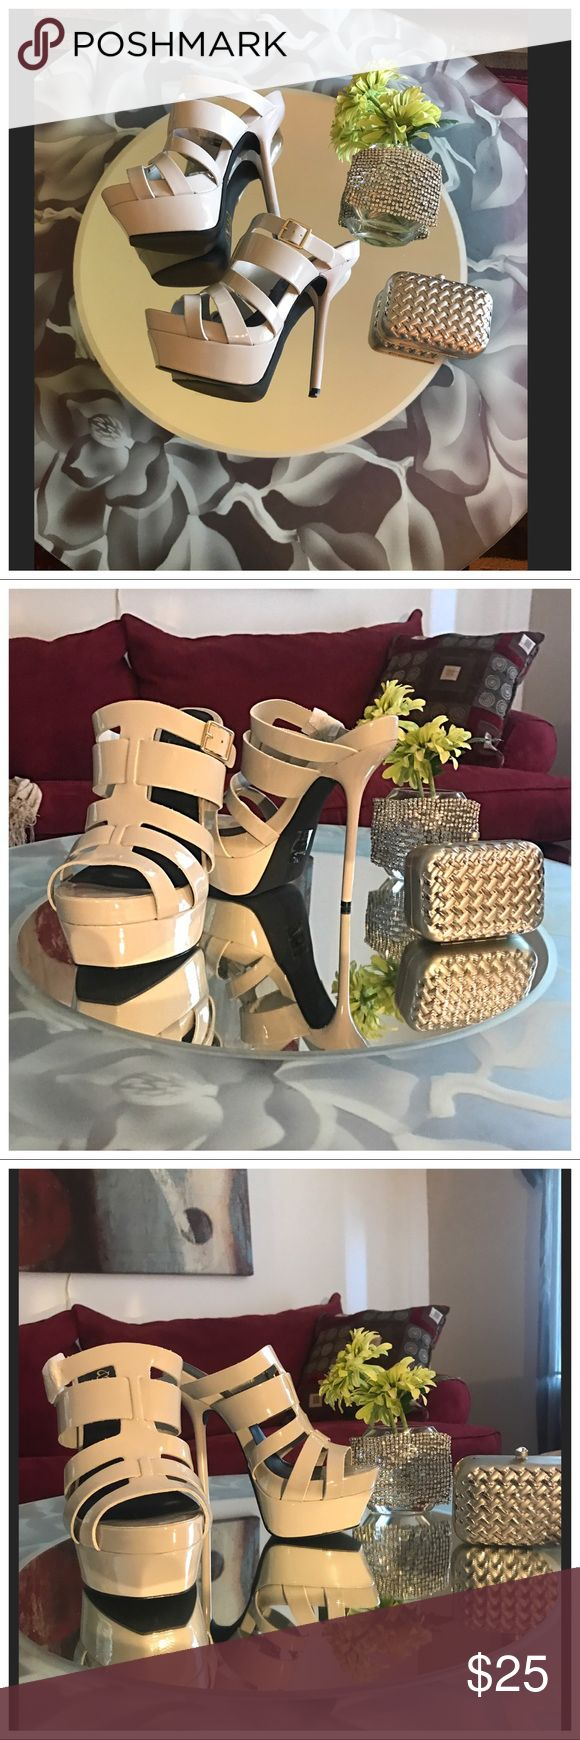 New Tulip Grey Mule Stiletto Platform Heels DESCRIPTION New size 9.5  Tulip is a mule platform sandal like you've never seen before. It's high-rise, strappy silhouette and glossy finish will have you commanding attention the moment you enter a room. scene Shoes Mules & Clogs